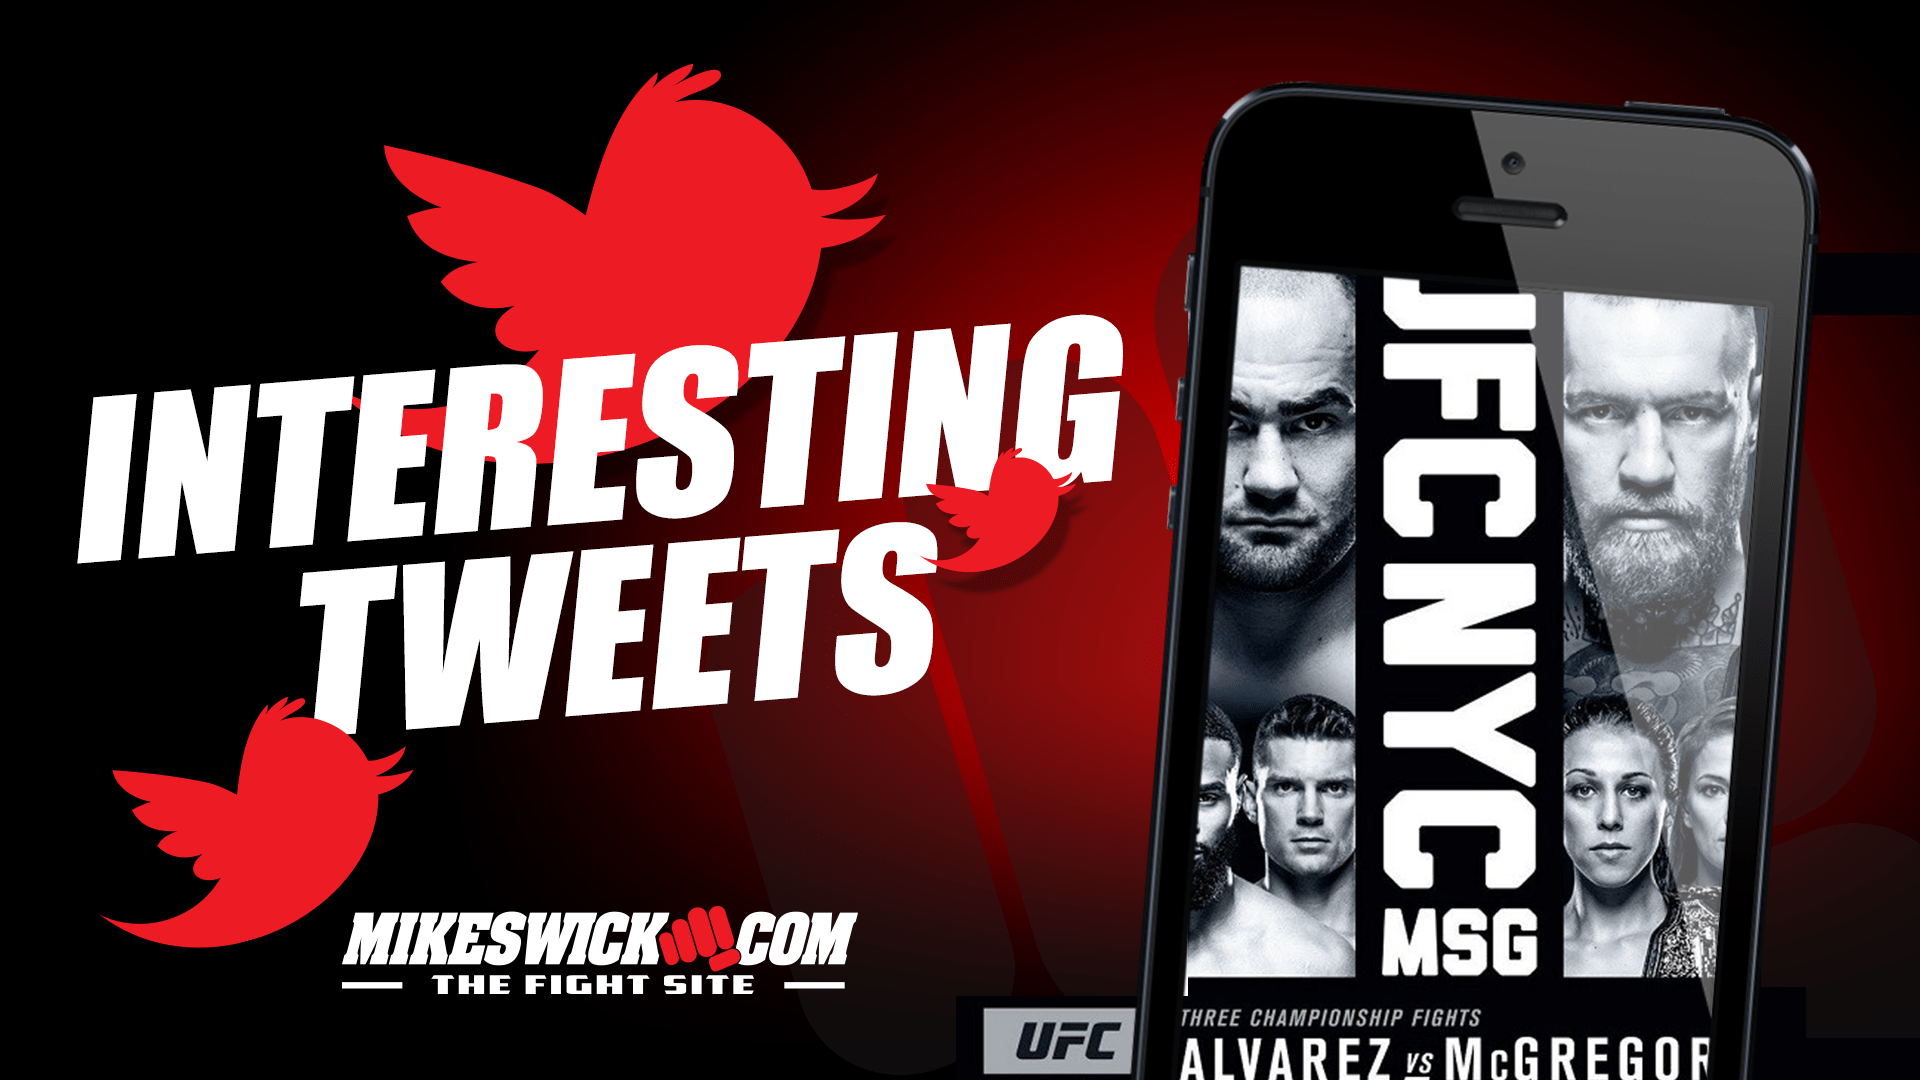 Fighters interesting tweets MikeSwick.com